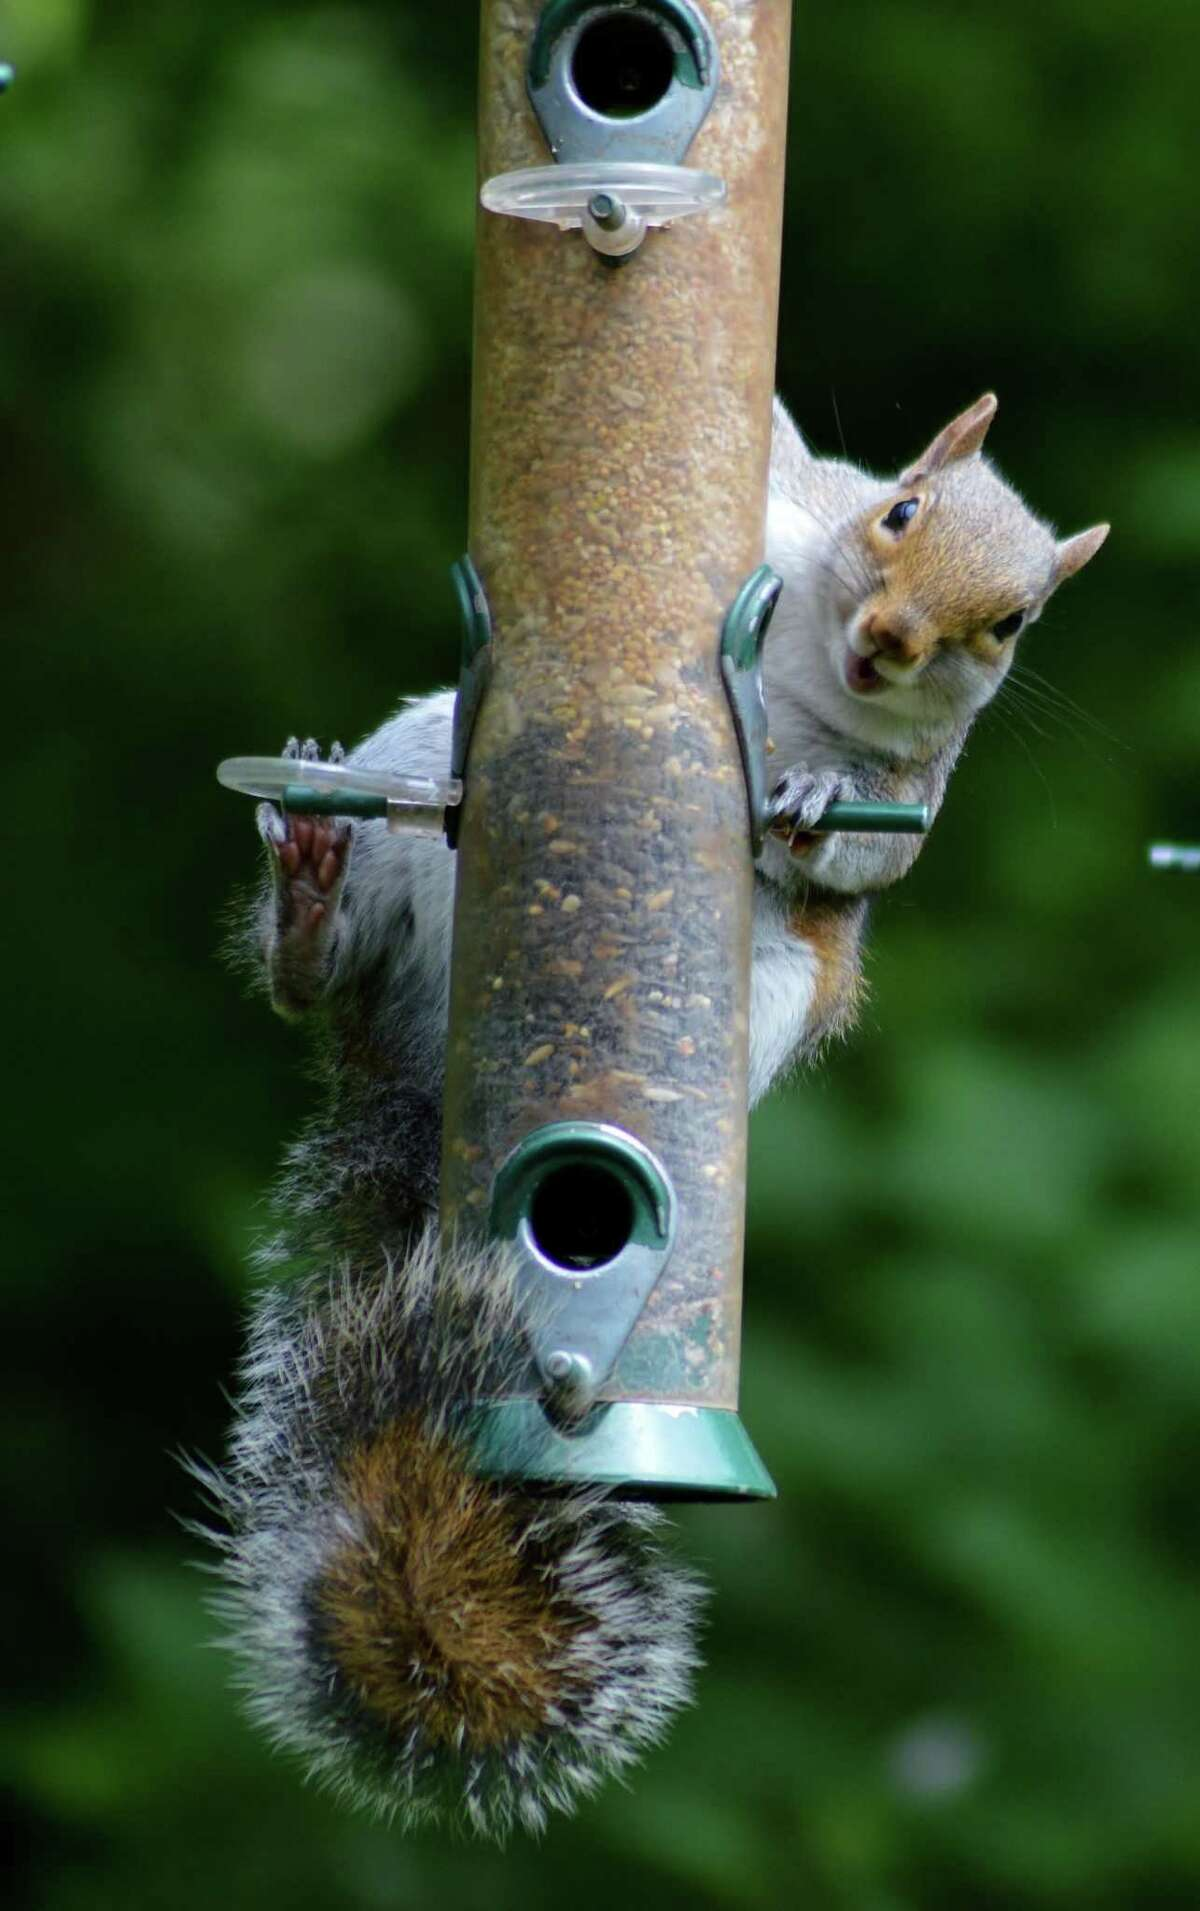 To keep squirrels from eating all your sunflower seeds meant for birds, use a feeder with weight-sensitive perches.